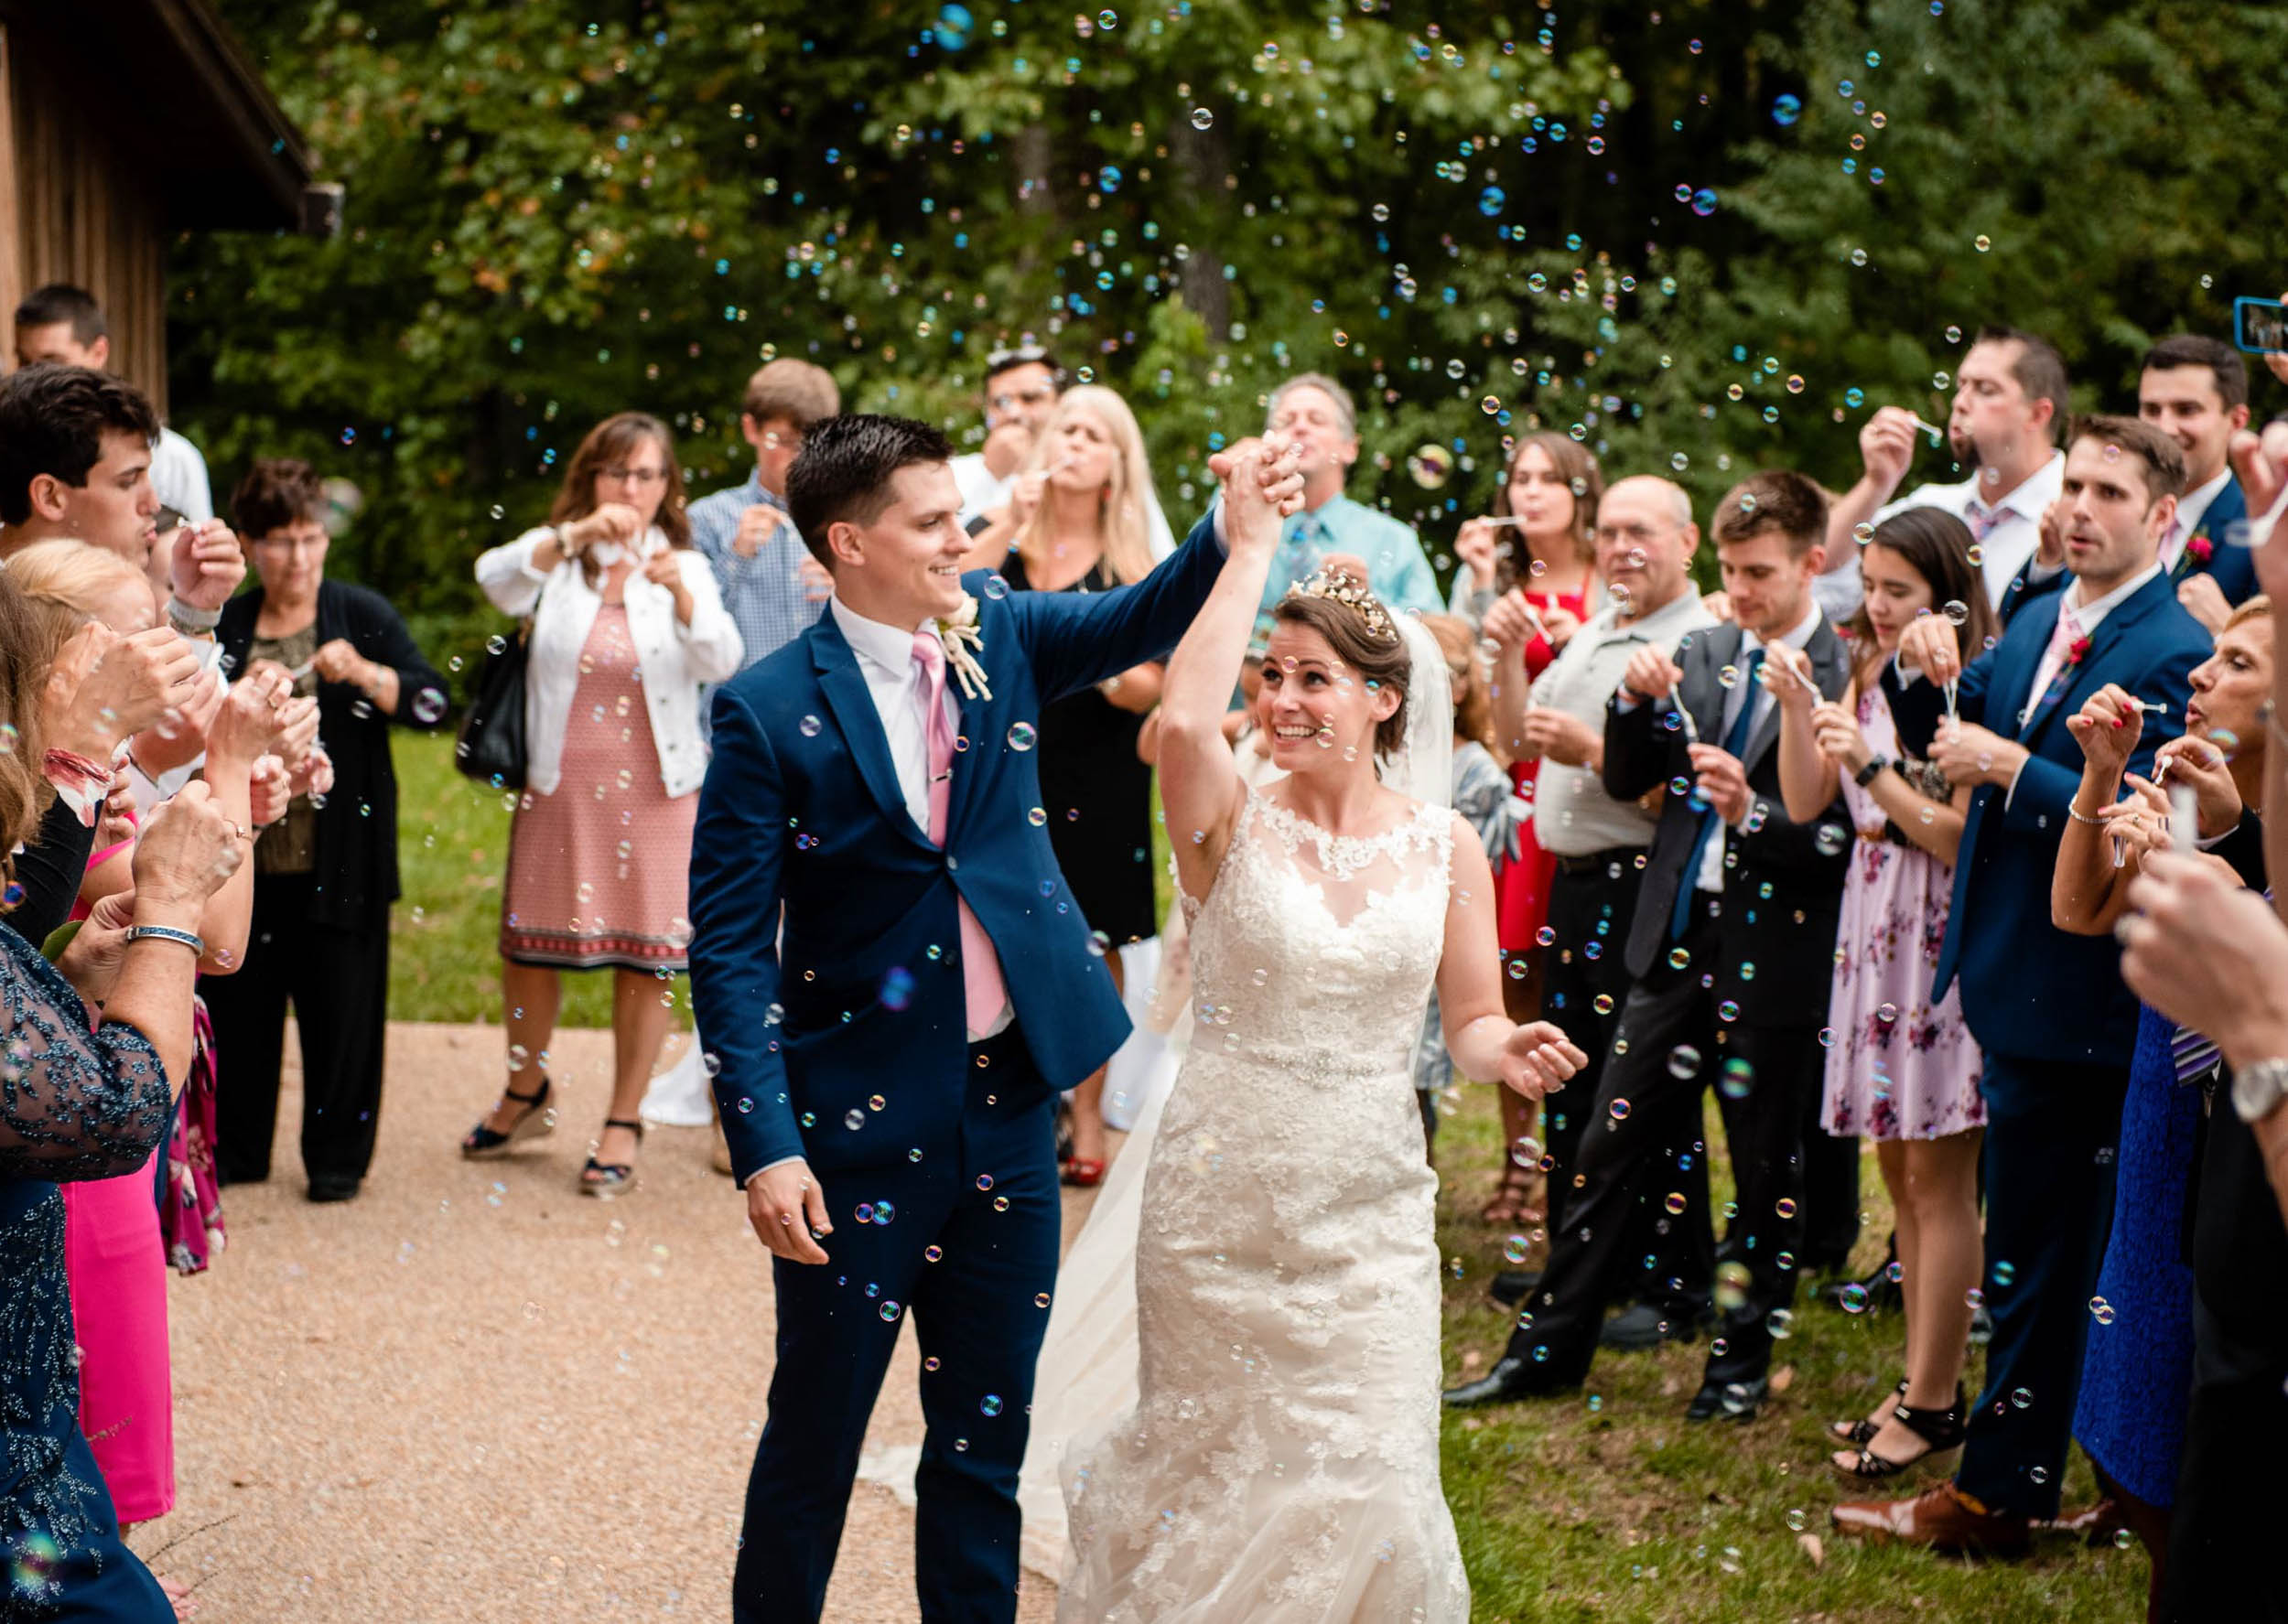 bride-groom-exit-bubbles.jpg